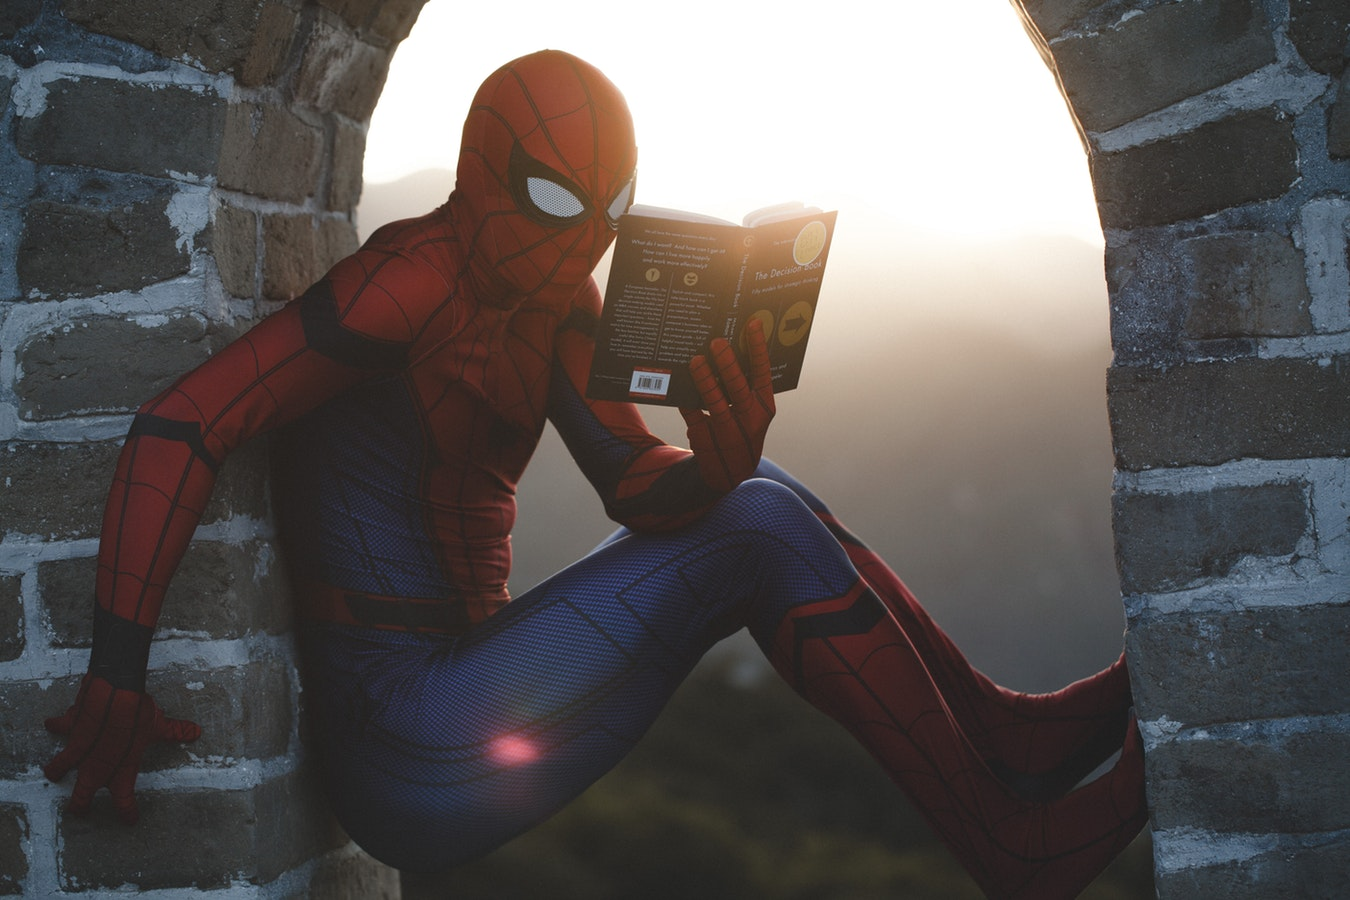 Spider Man with book - Unsplash Moodshot